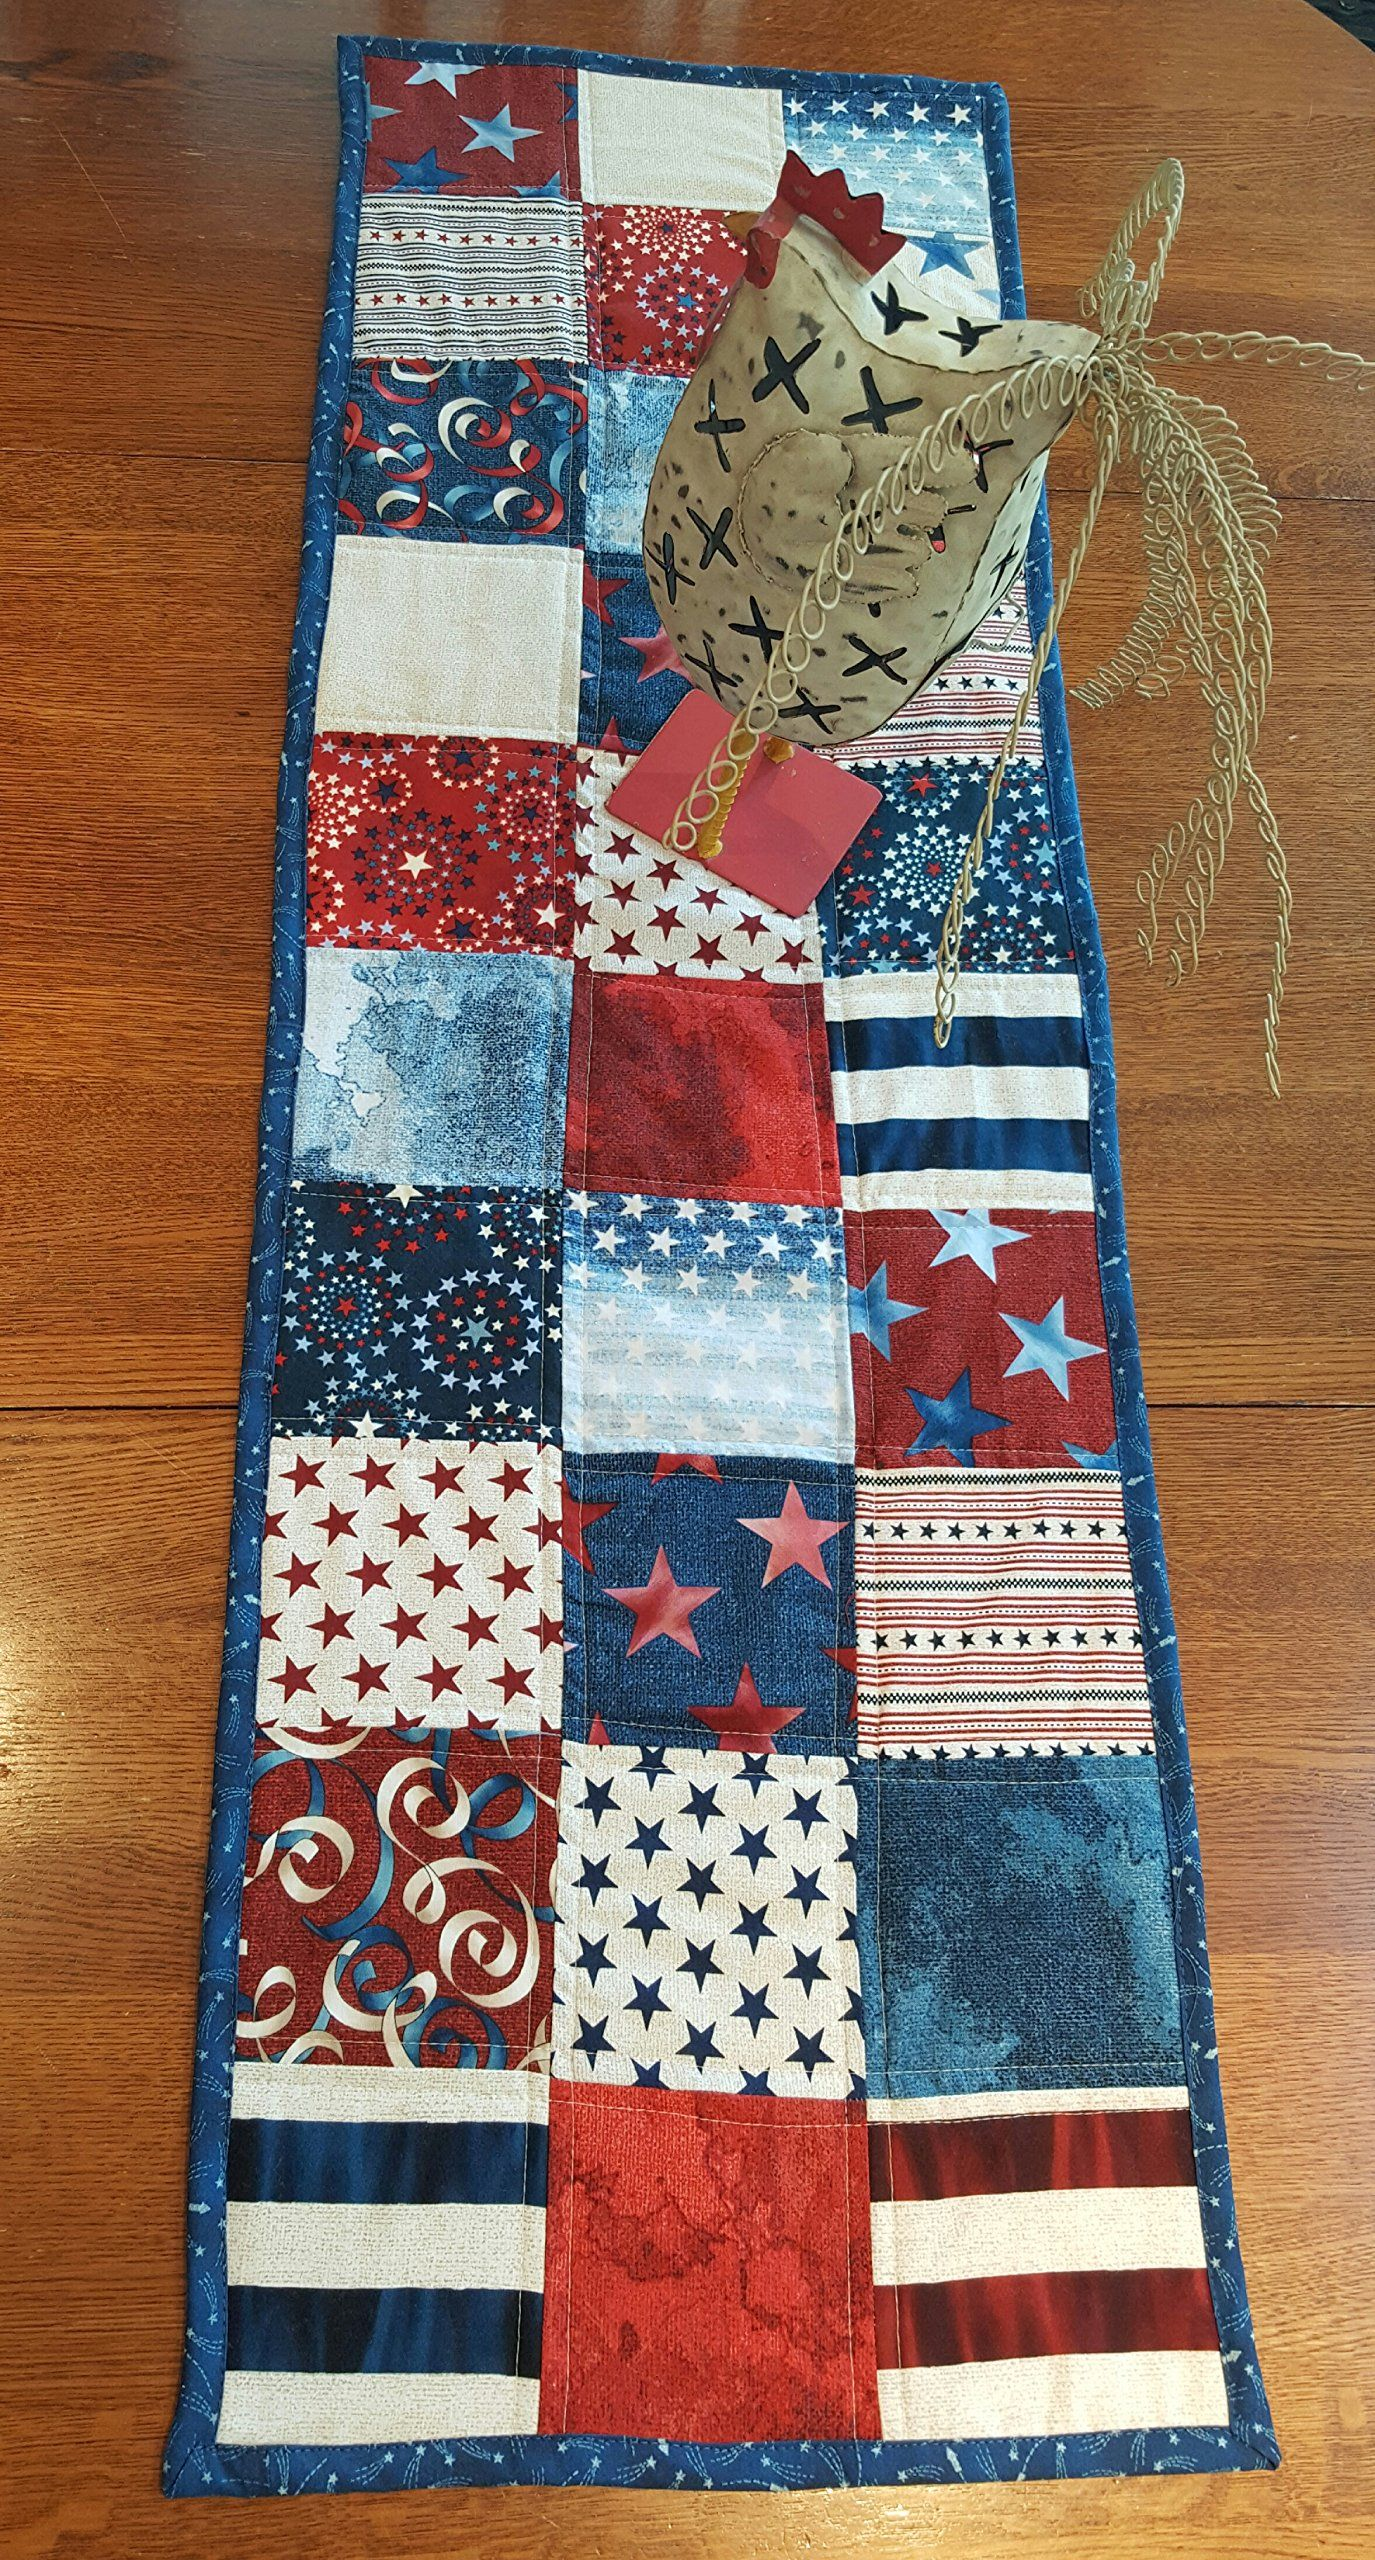 Marvelous Oh My Stars Quilted Patriotic Table Runner Free Shipping Home Interior And Landscaping Eliaenasavecom